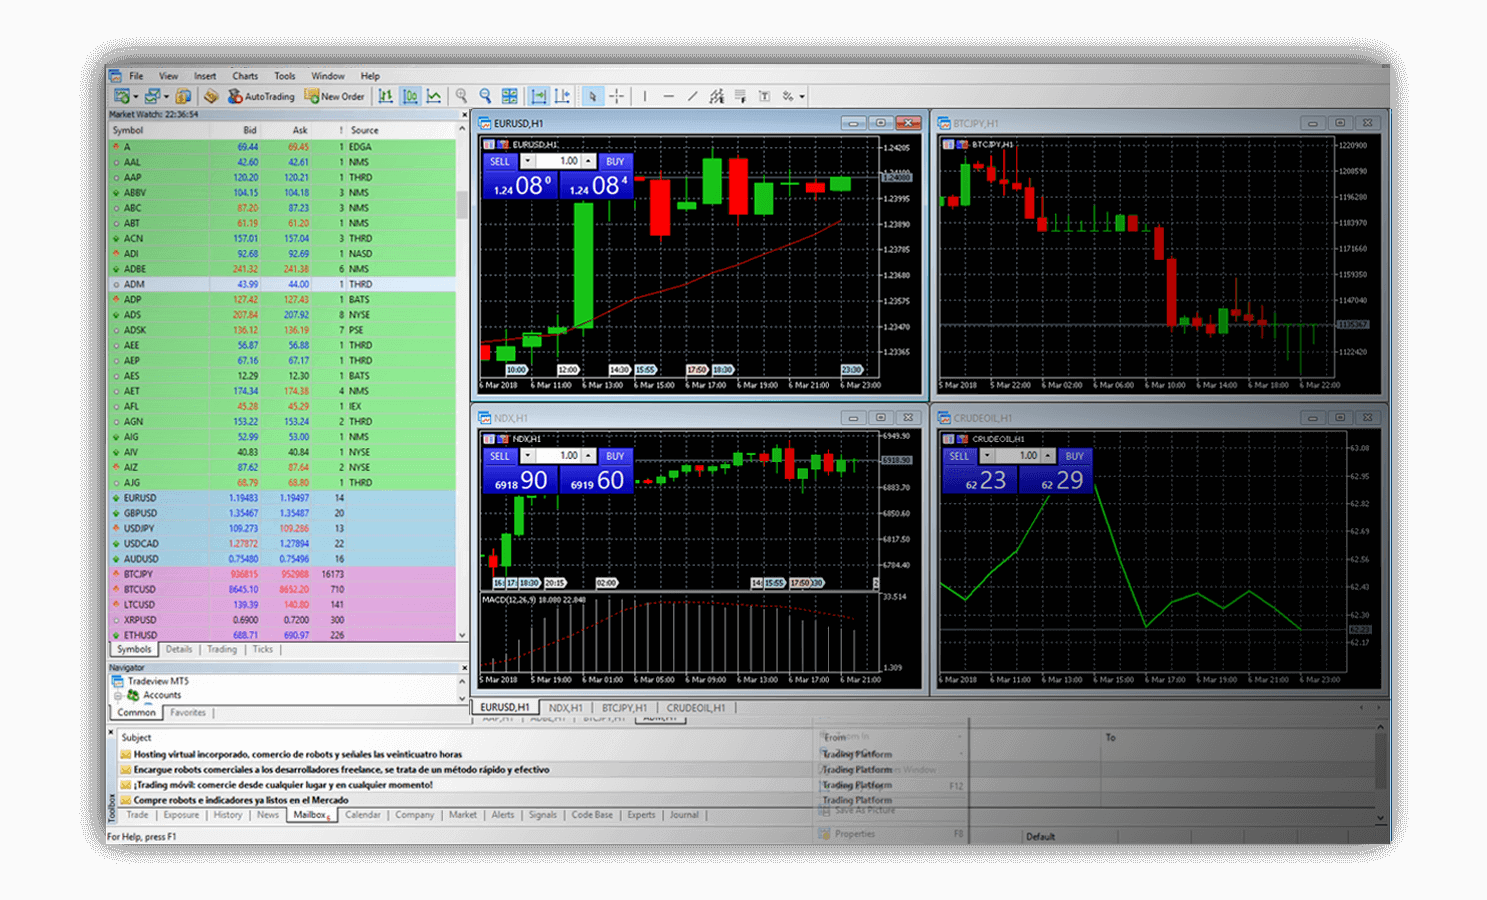 Tradeview's MetaTrader5 software